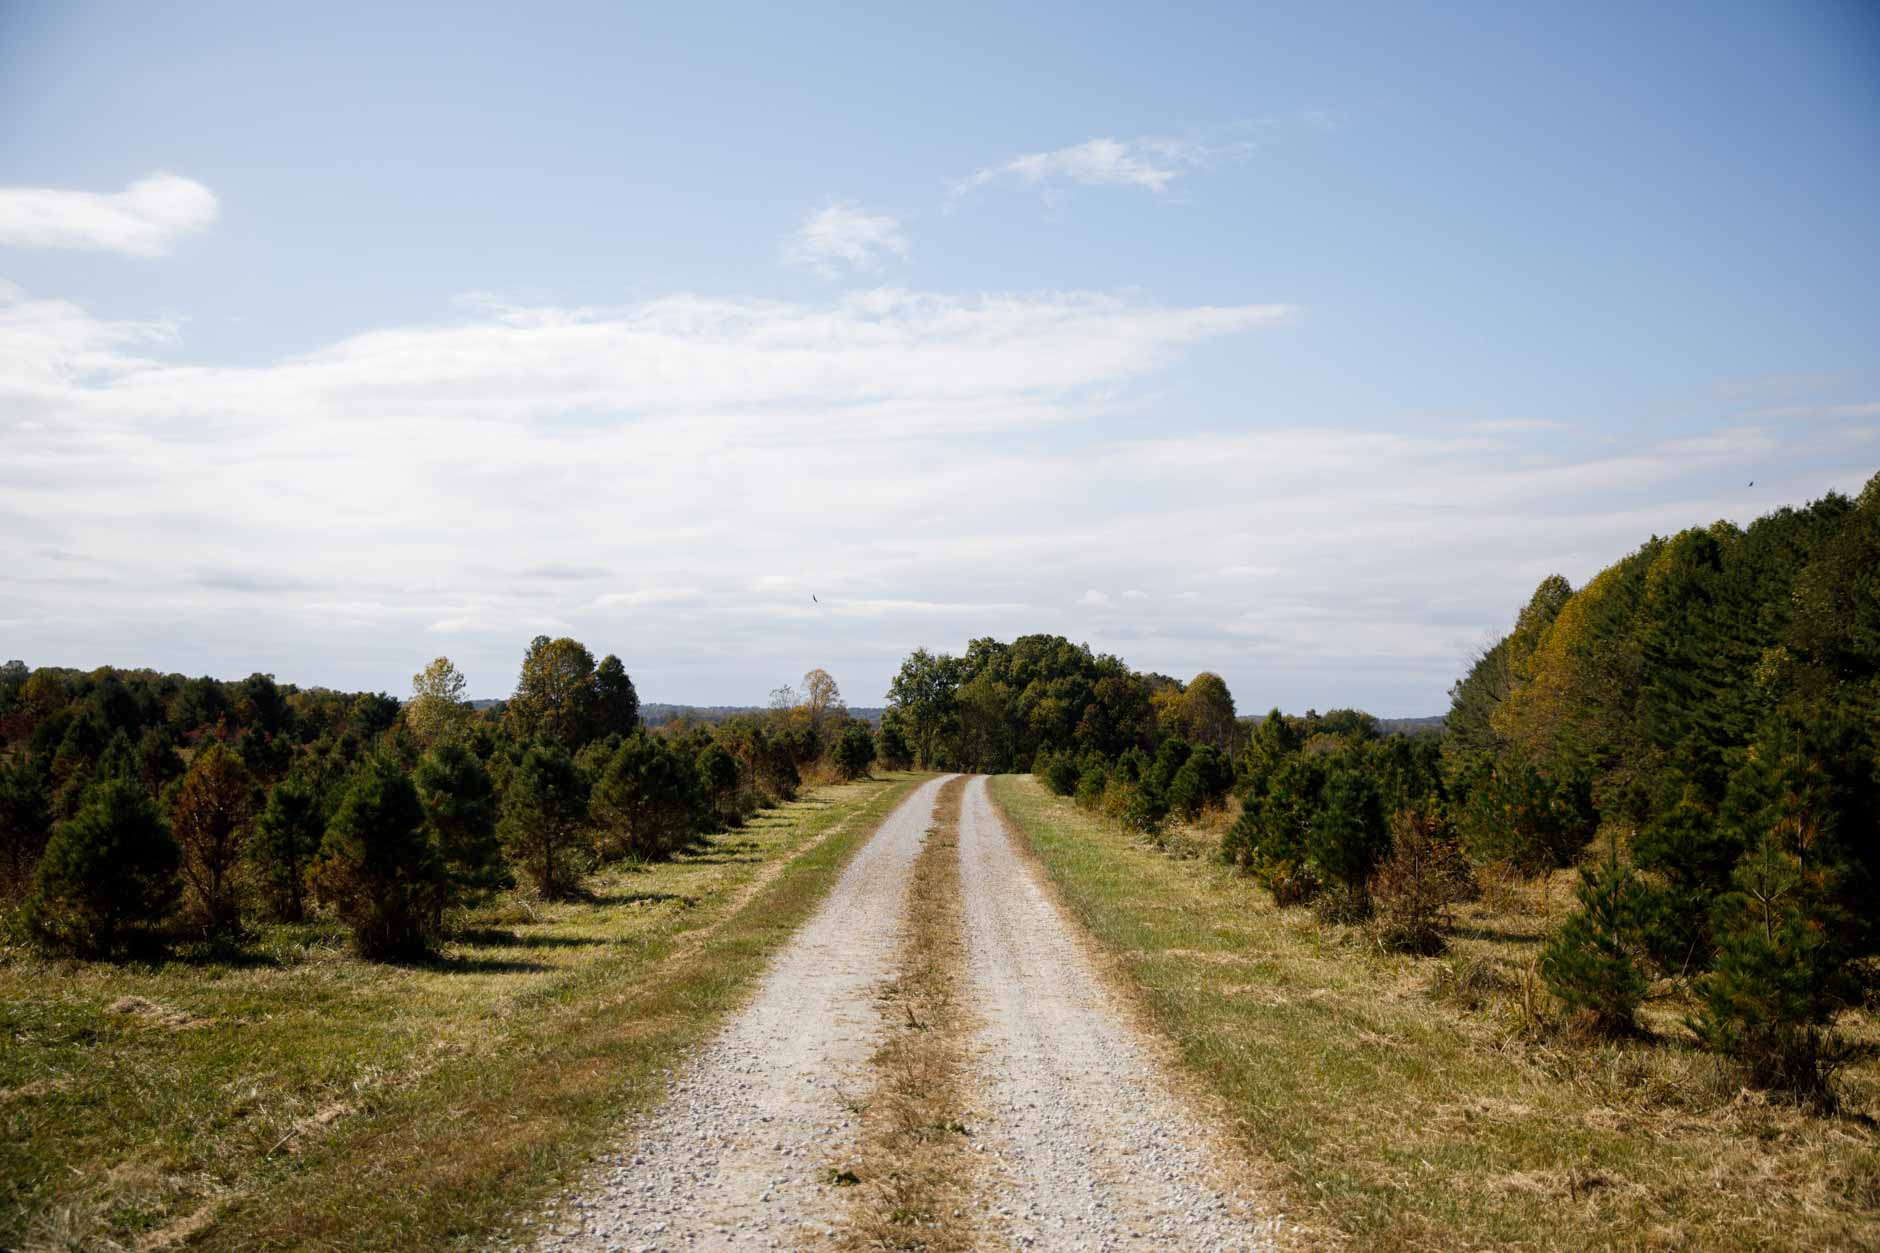 Christmas trees are pictured in a field at Twin H Tree Farms near Bloomington on Tuesday, Oct. 15, 2019. An Indiana University study highlighted a 40 percent decrease in Indiana Christmas tree farms since 2002. The study found that the decline is likely to continue. (James Brosher/Indiana University)